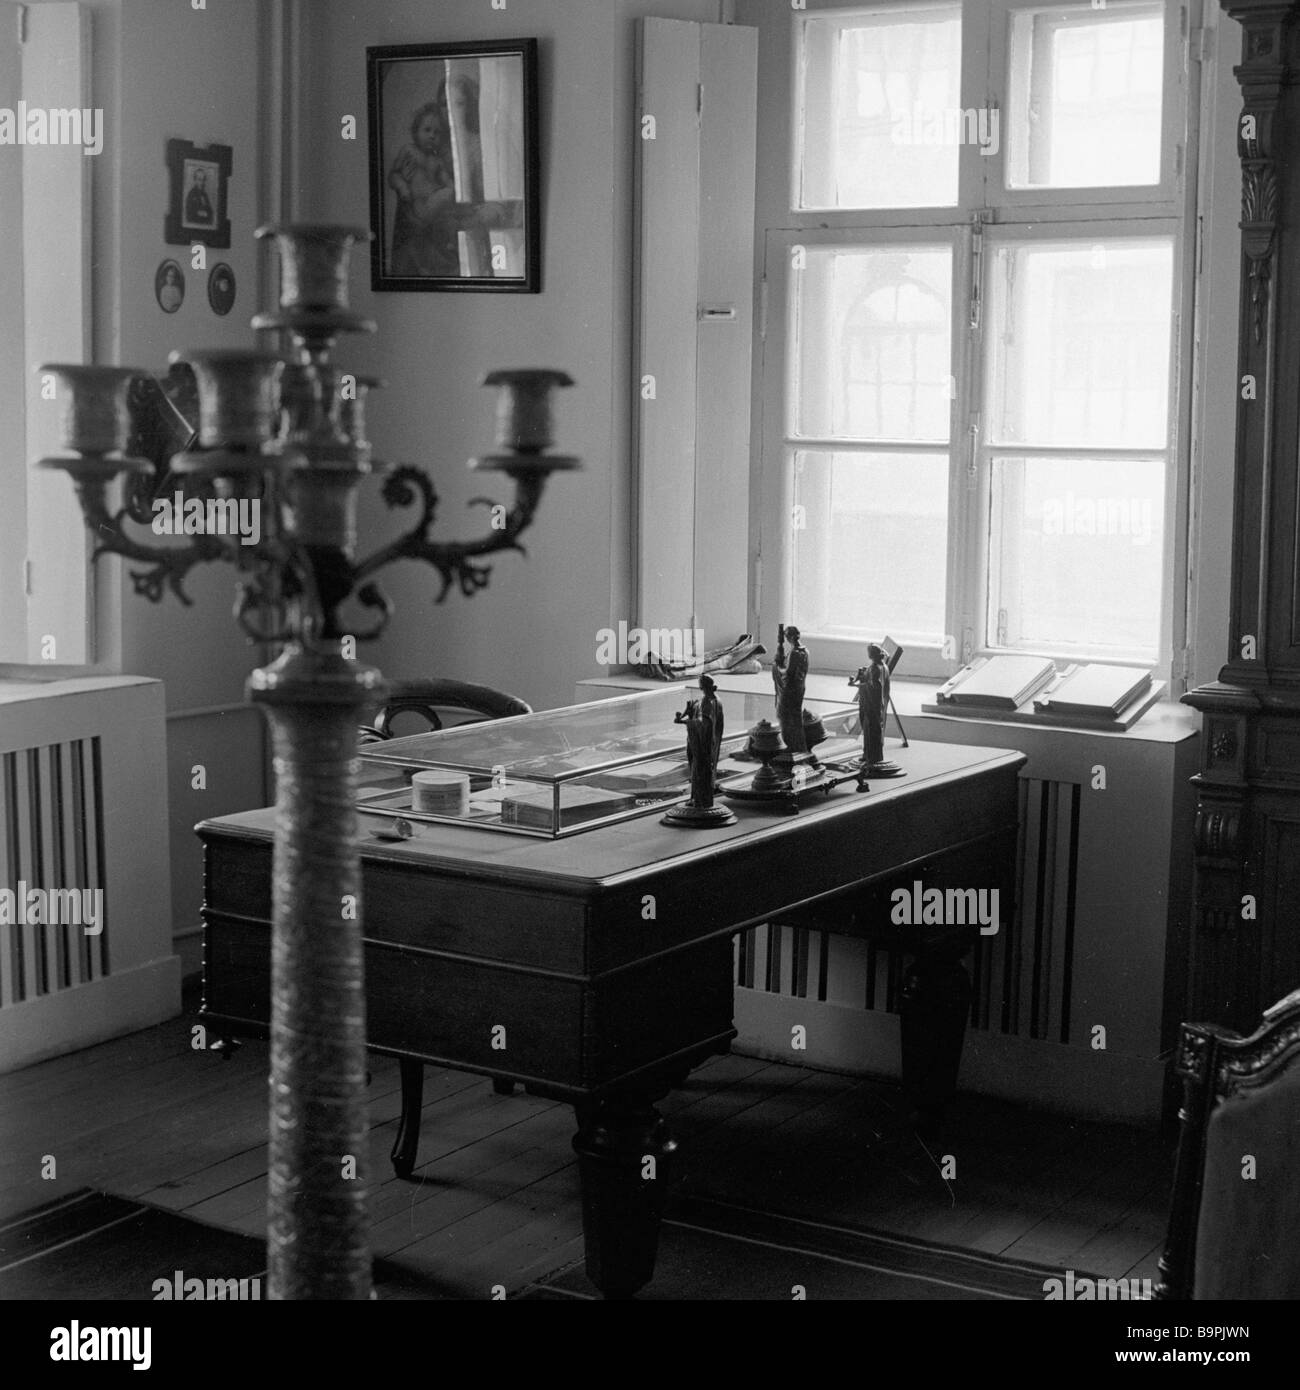 Fedor Dostoyevsky s desk in his Moscow memorial house - Stock Image